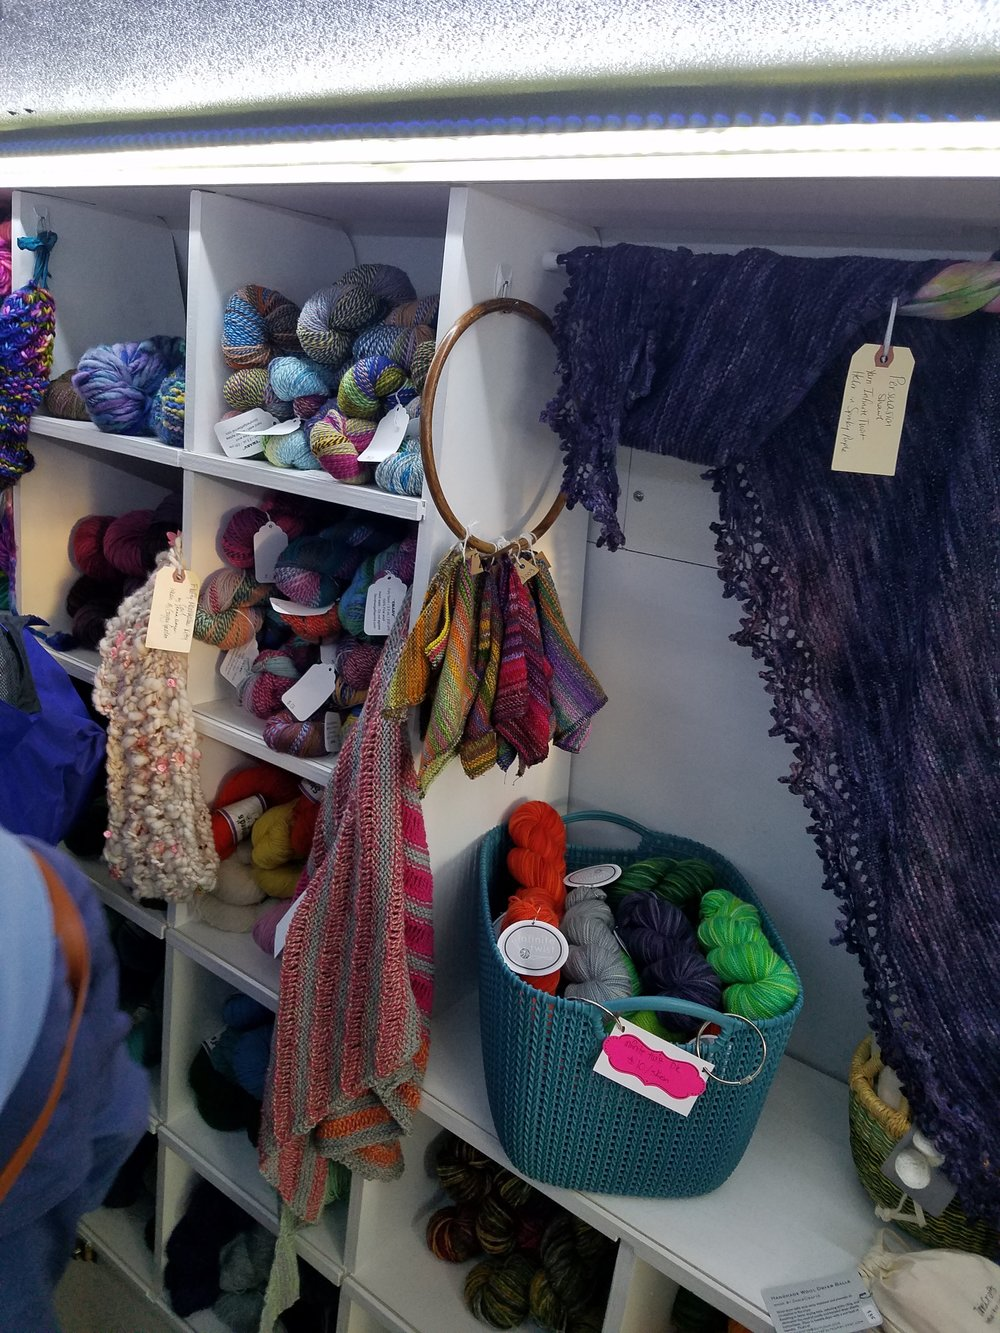 So much fun yarn and fiber products packed into the truck.